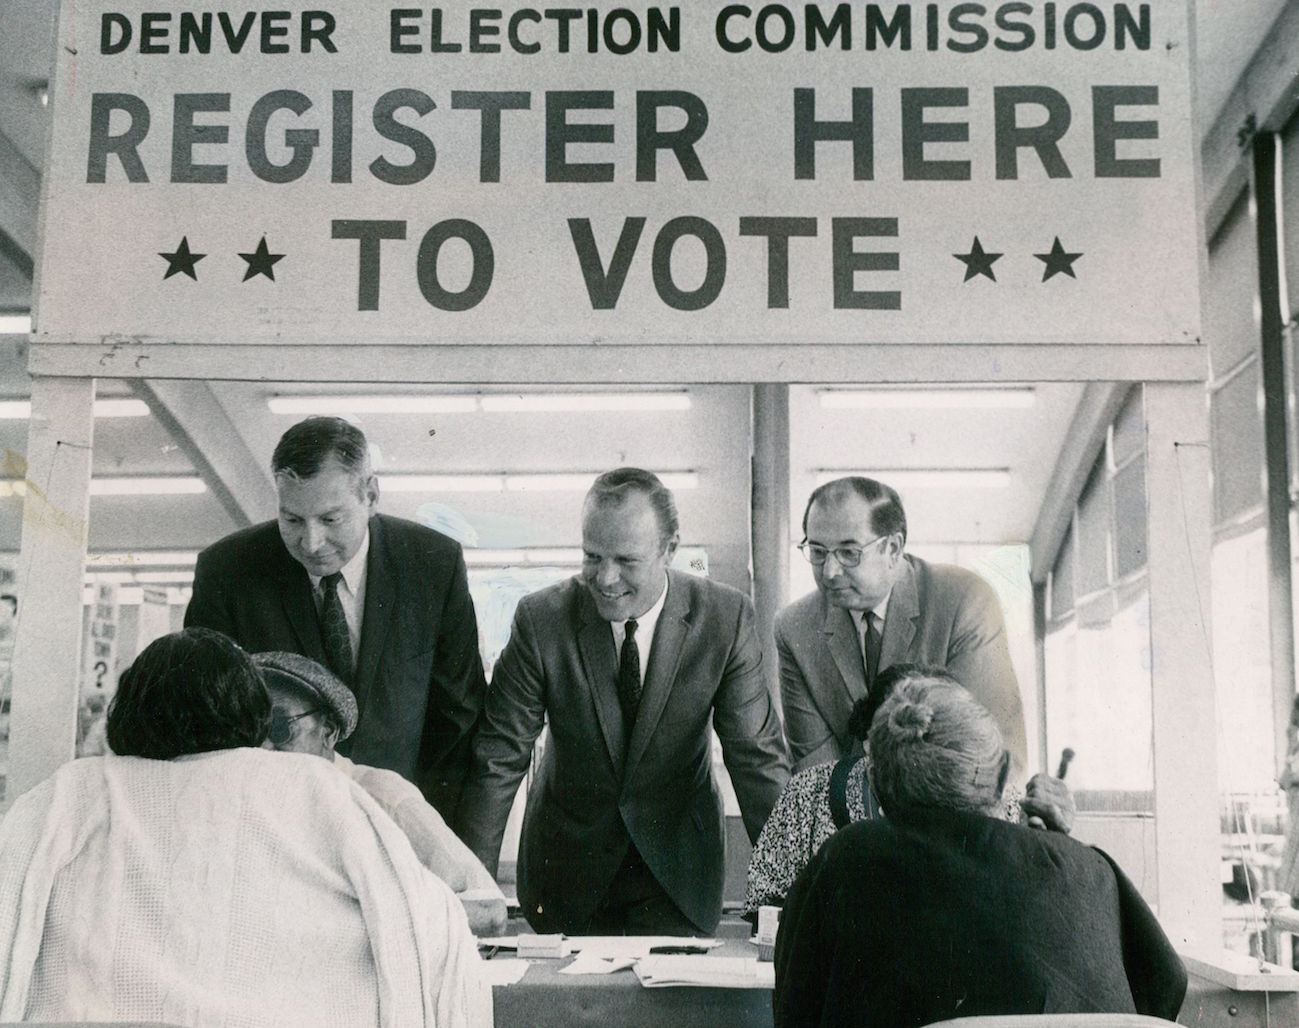 Denver election commissioners on hand for voter registration in Denver on July 9, 1968